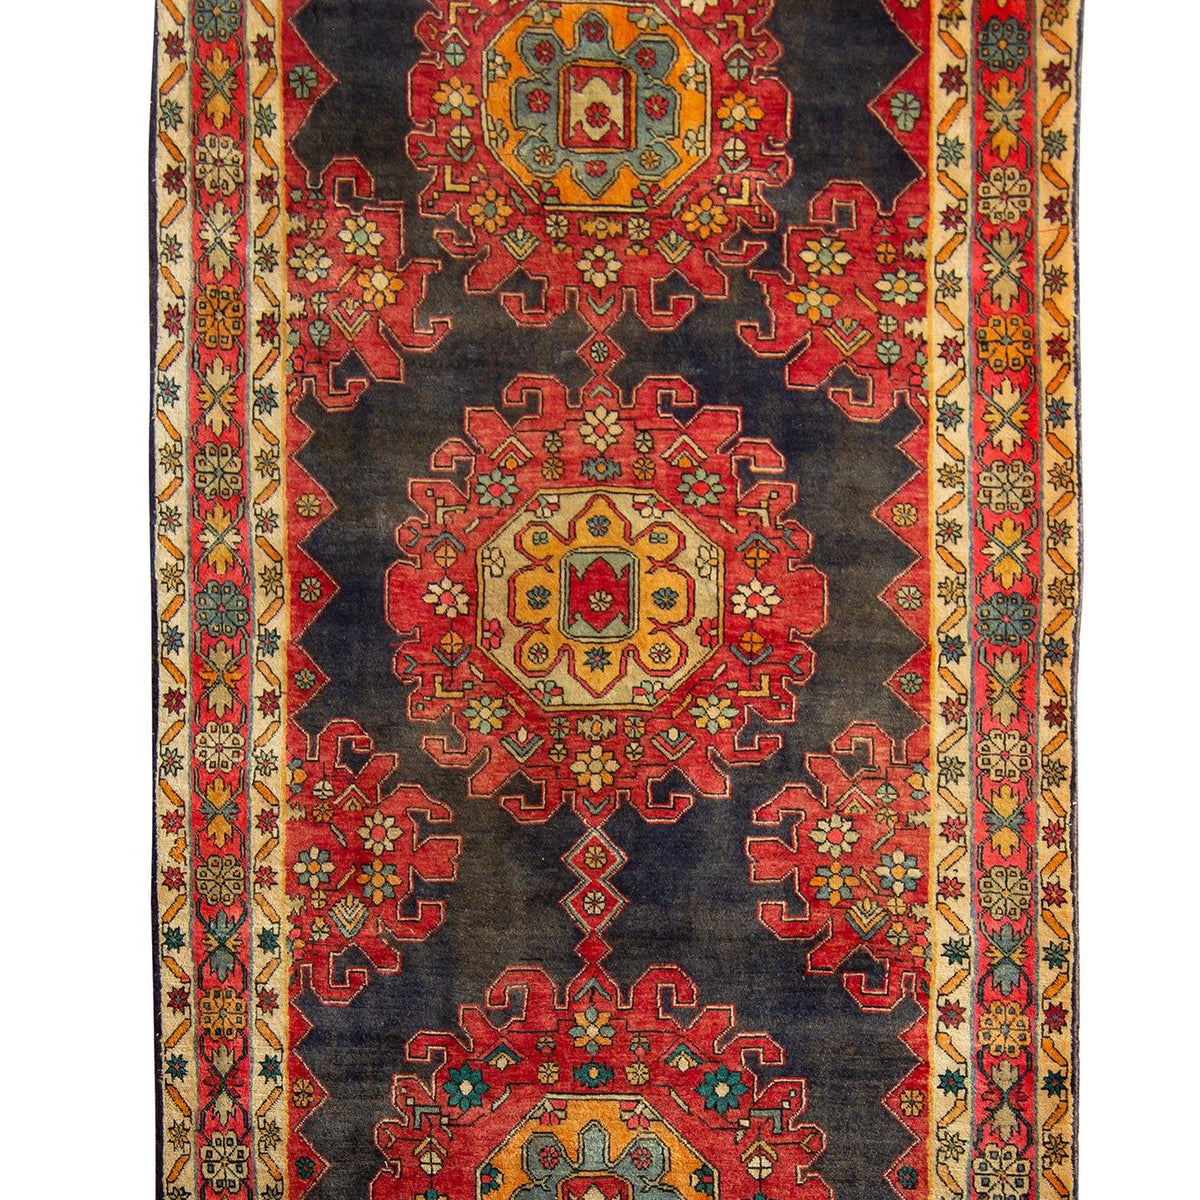 4961 Persian-Rug | House-of-Haghi | NewMarket | Auckland | NZ | Handmade Persian Rugs | Hand Knotted Persian Rugs